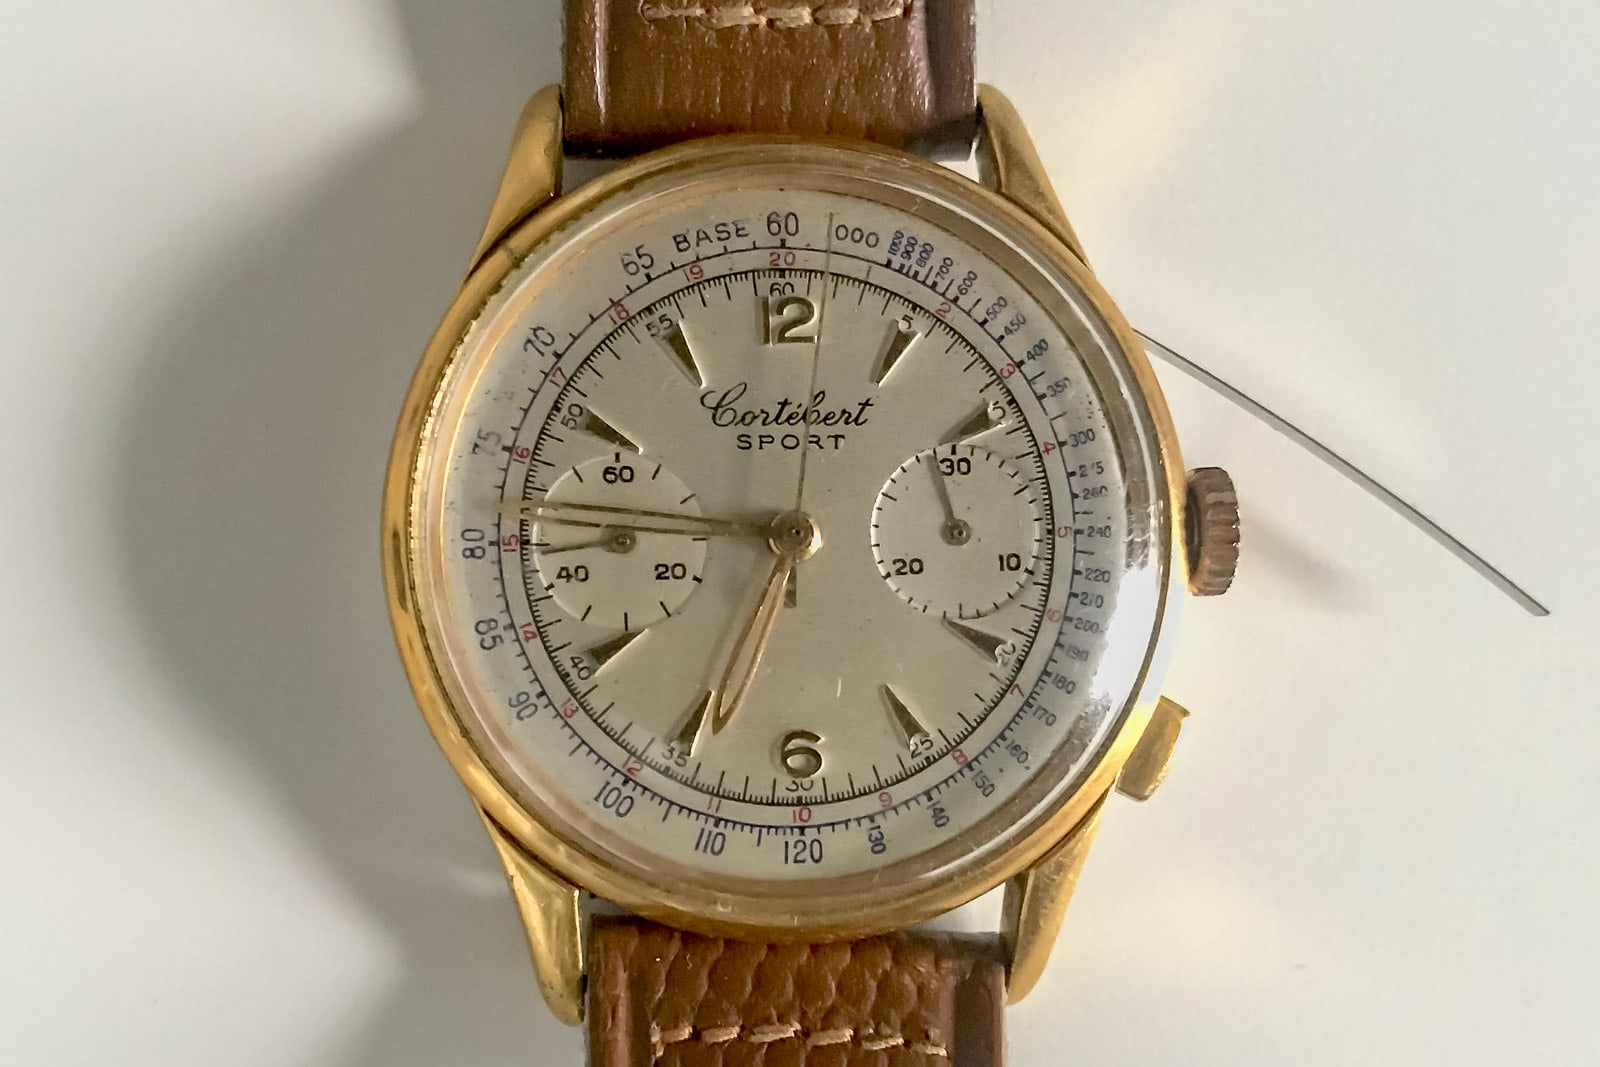 www.fratellowatches.com